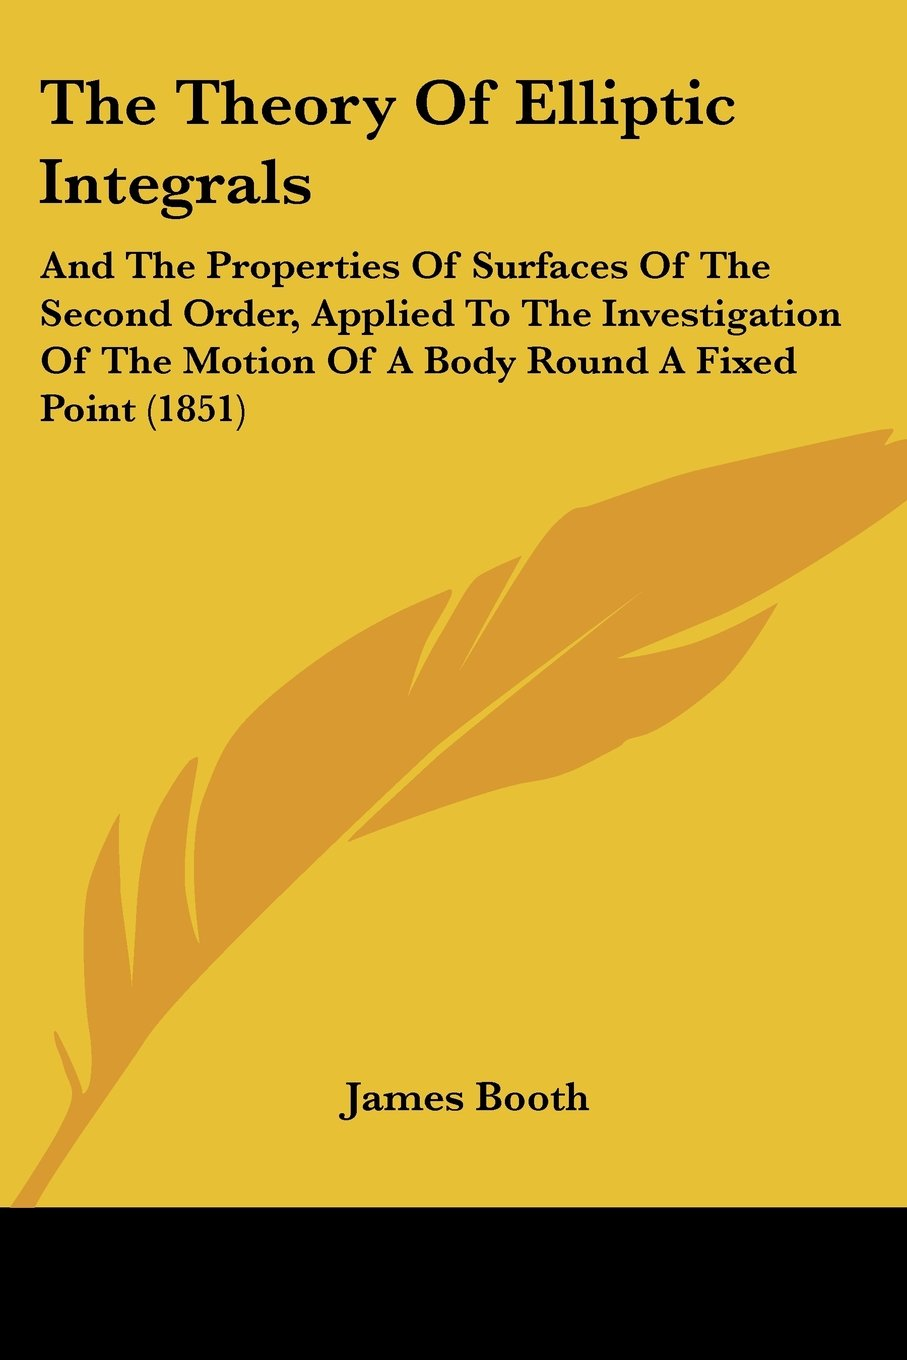 The Theory Of Elliptic Integrals: And The Properties Of Surfaces Of The Second Order, Applied To The Investigation Of The Motion Of A Body Round A Fixed Point (1851) pdf epub